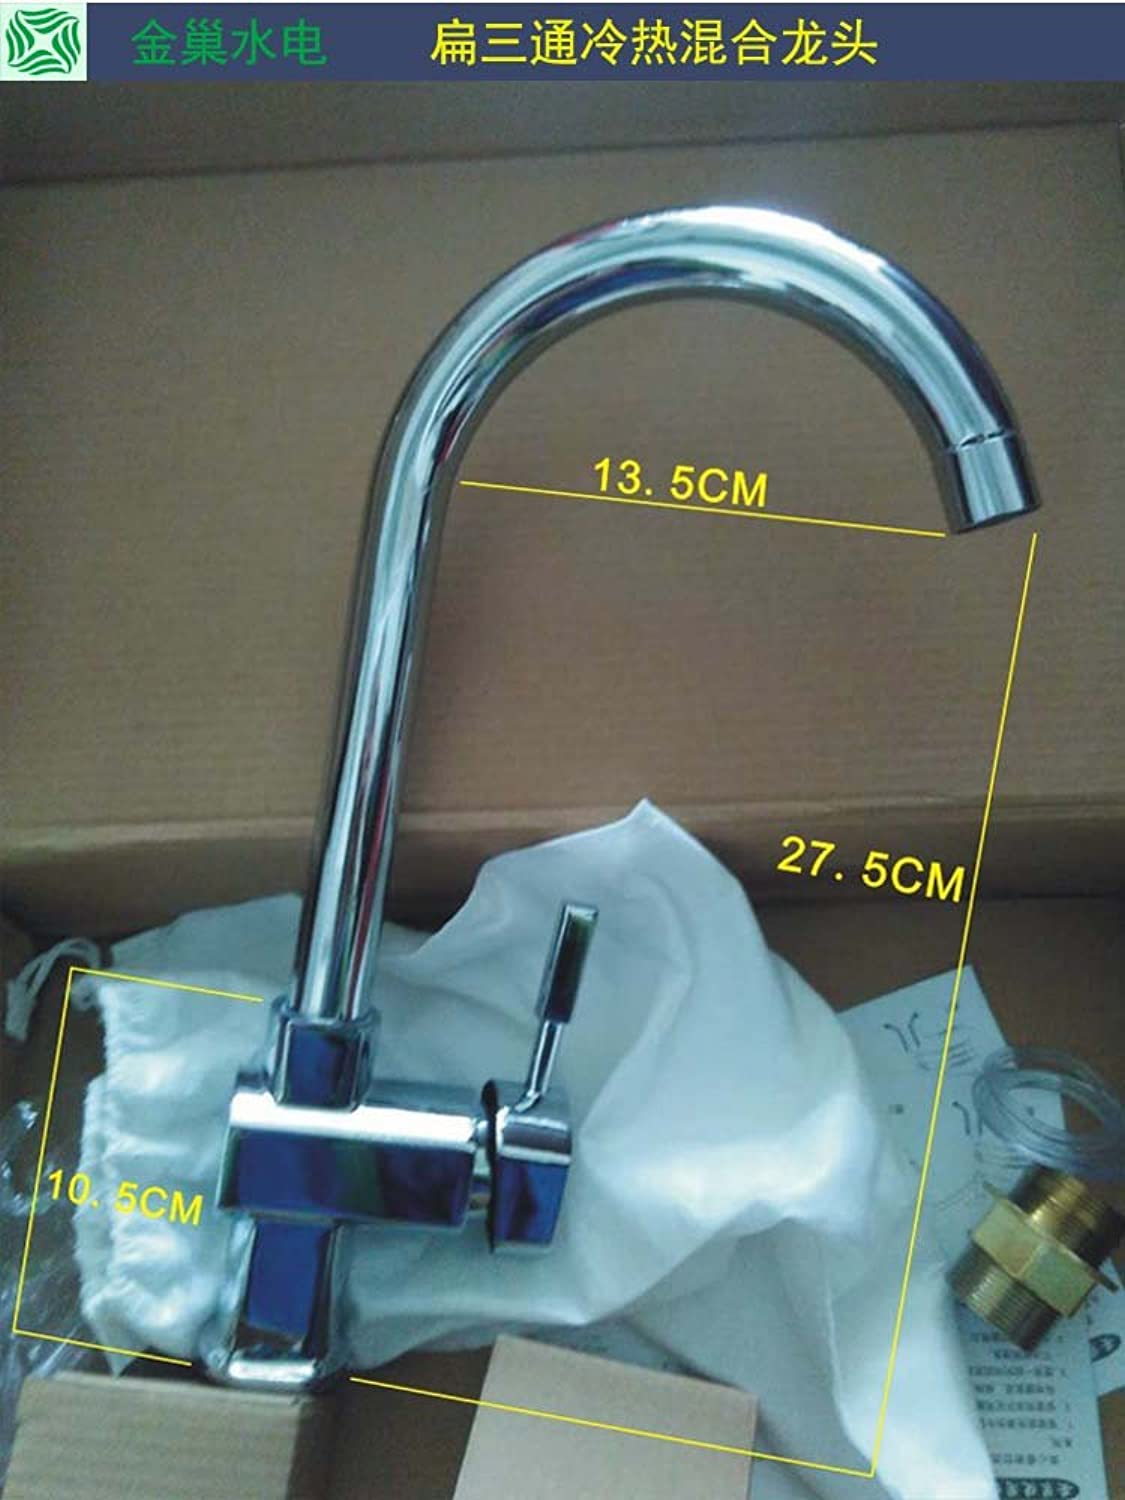 Gyps Faucet Sink Single Lever Mixer Tap Fitting for Bathroom The Most Important Boutique Upferung The Smaller Cooking Pot of Hot and Cold Colours Flat Screen Tee T Slim Flat